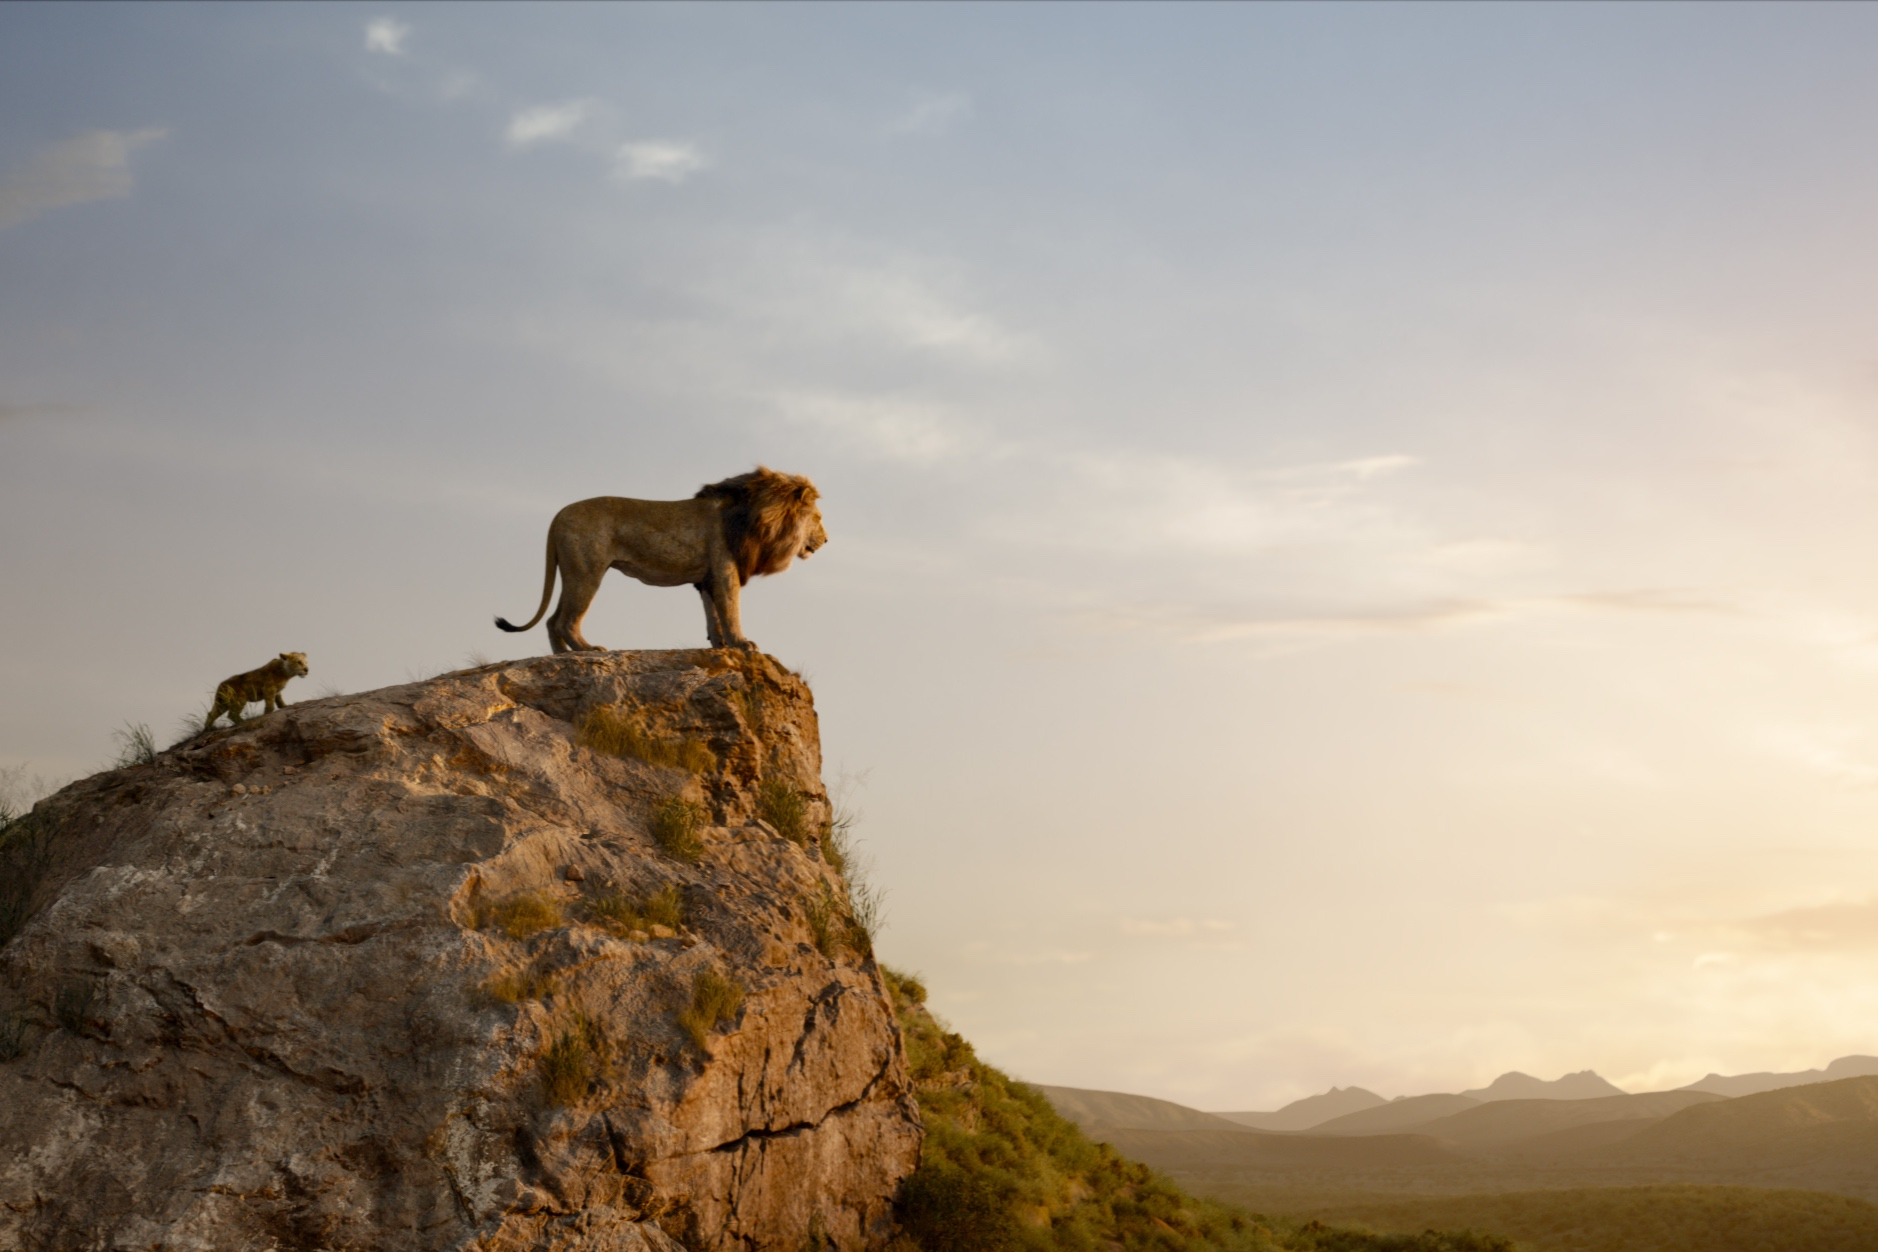 Mufasa and Simba in the majestic landscape.